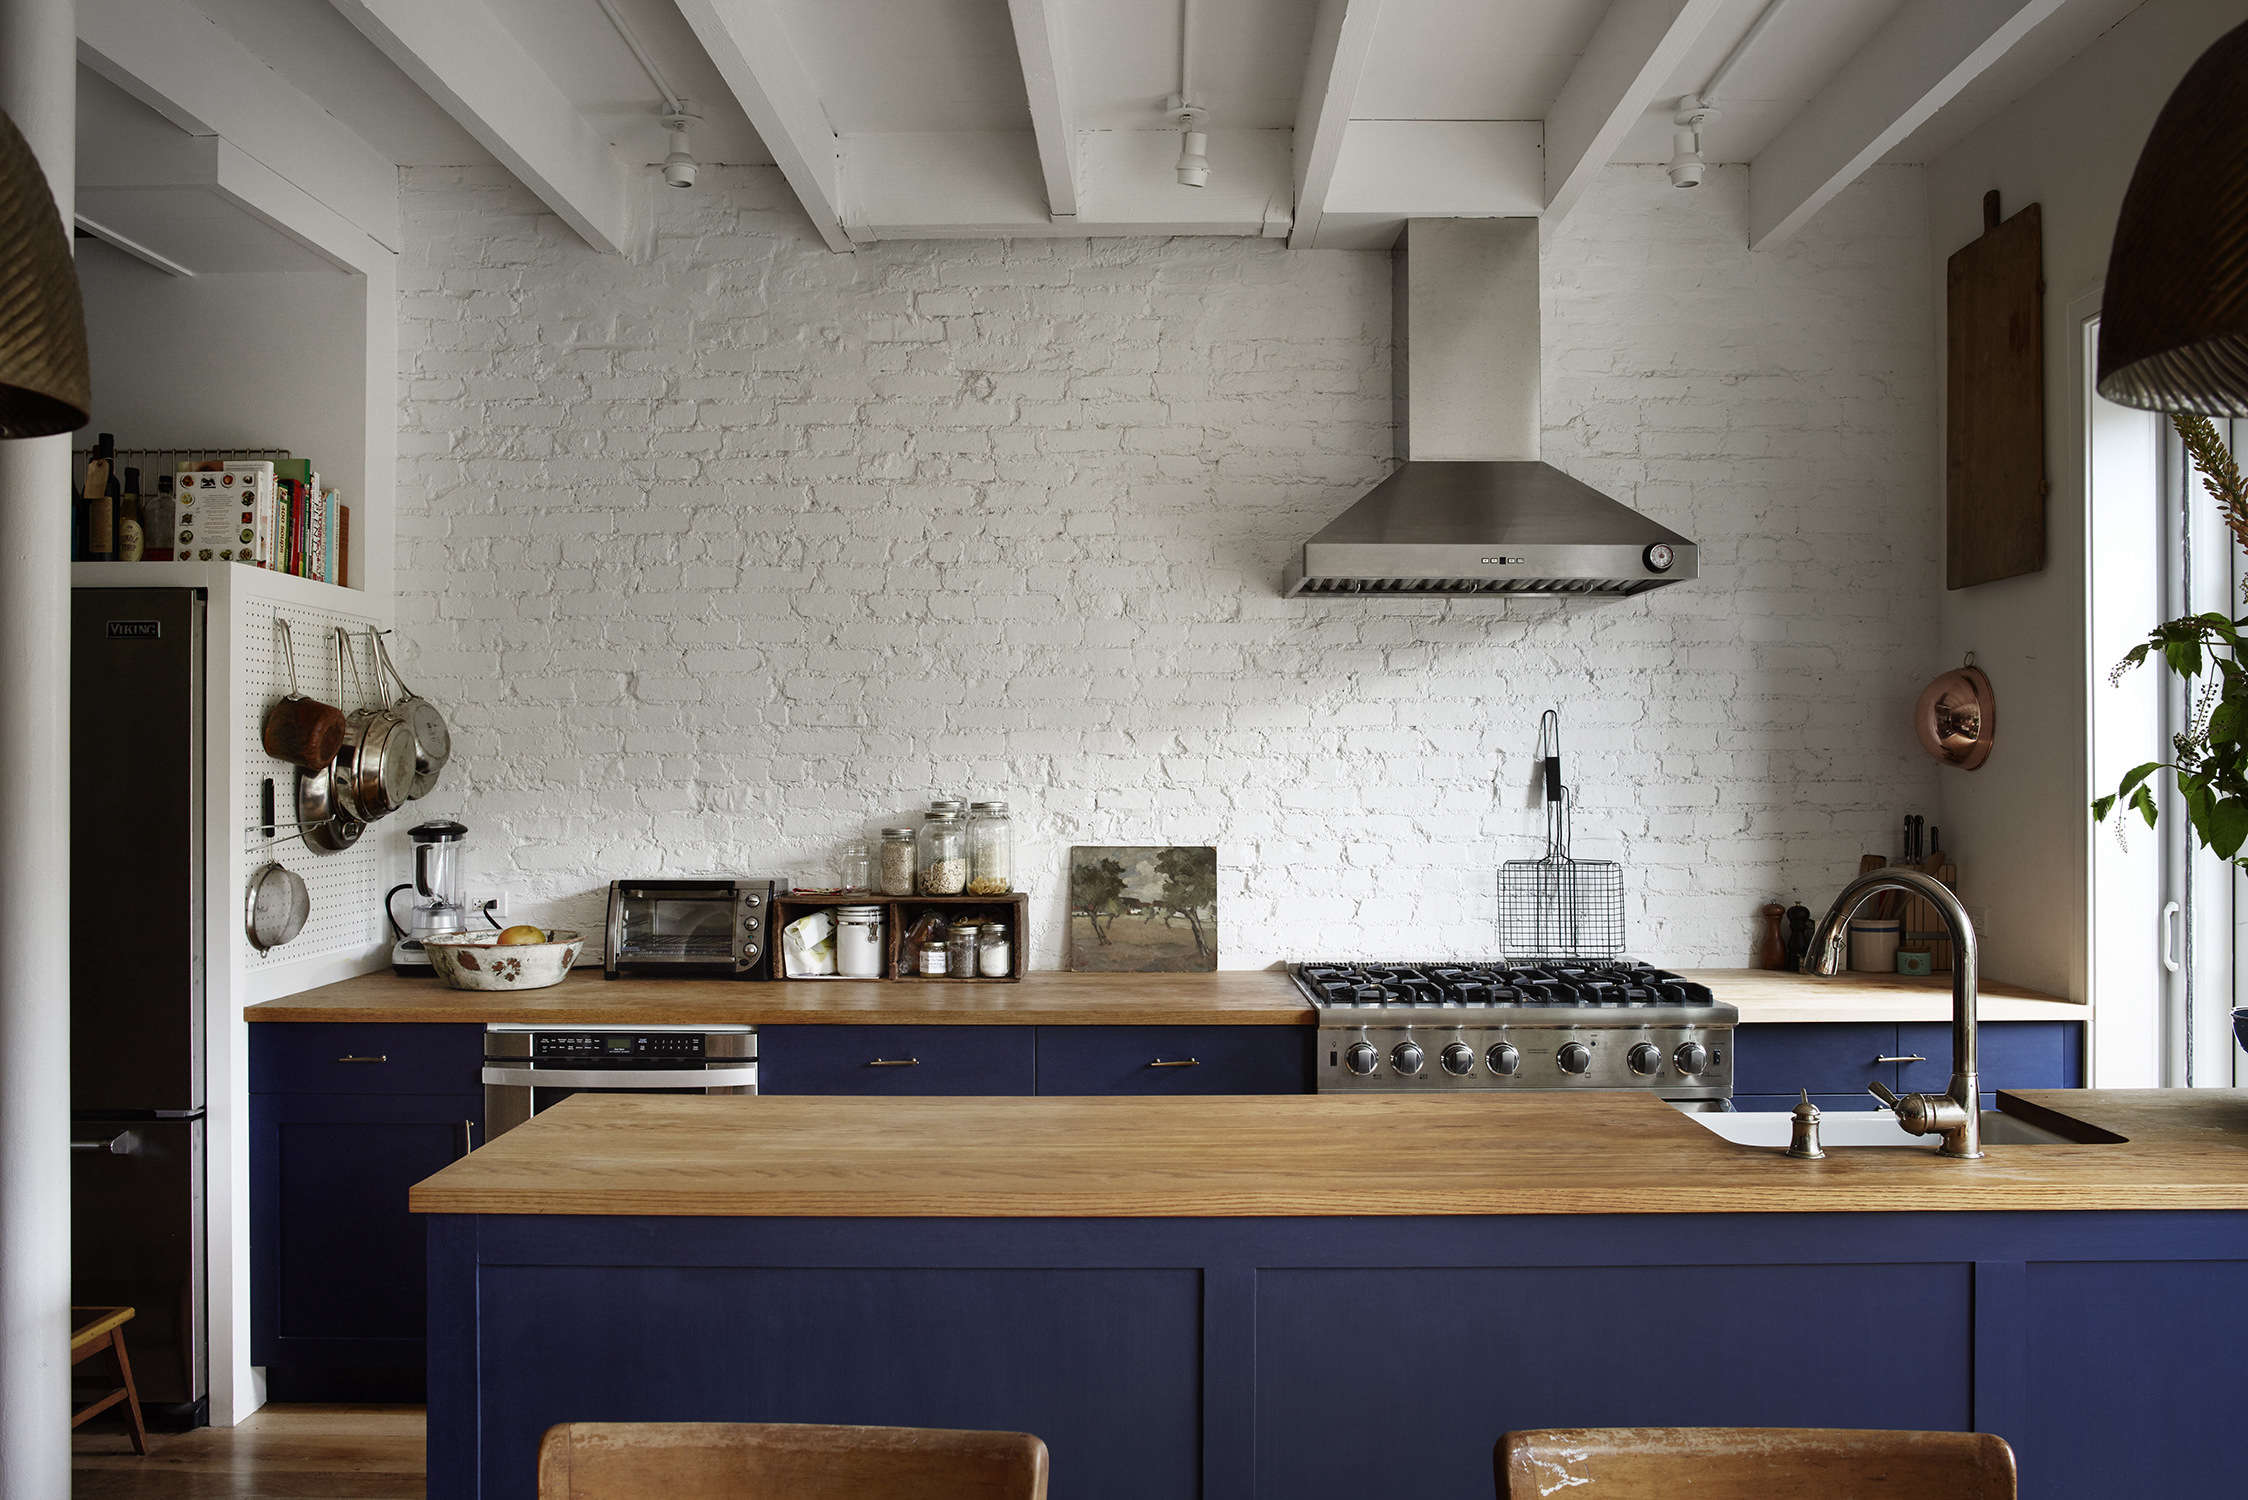 Rony Vardi's Carroll Gardens, Brooklyn townhouse open kitchen in navy, remodeled by Bangia Agostinho Architecture. Pia Ulin photo.